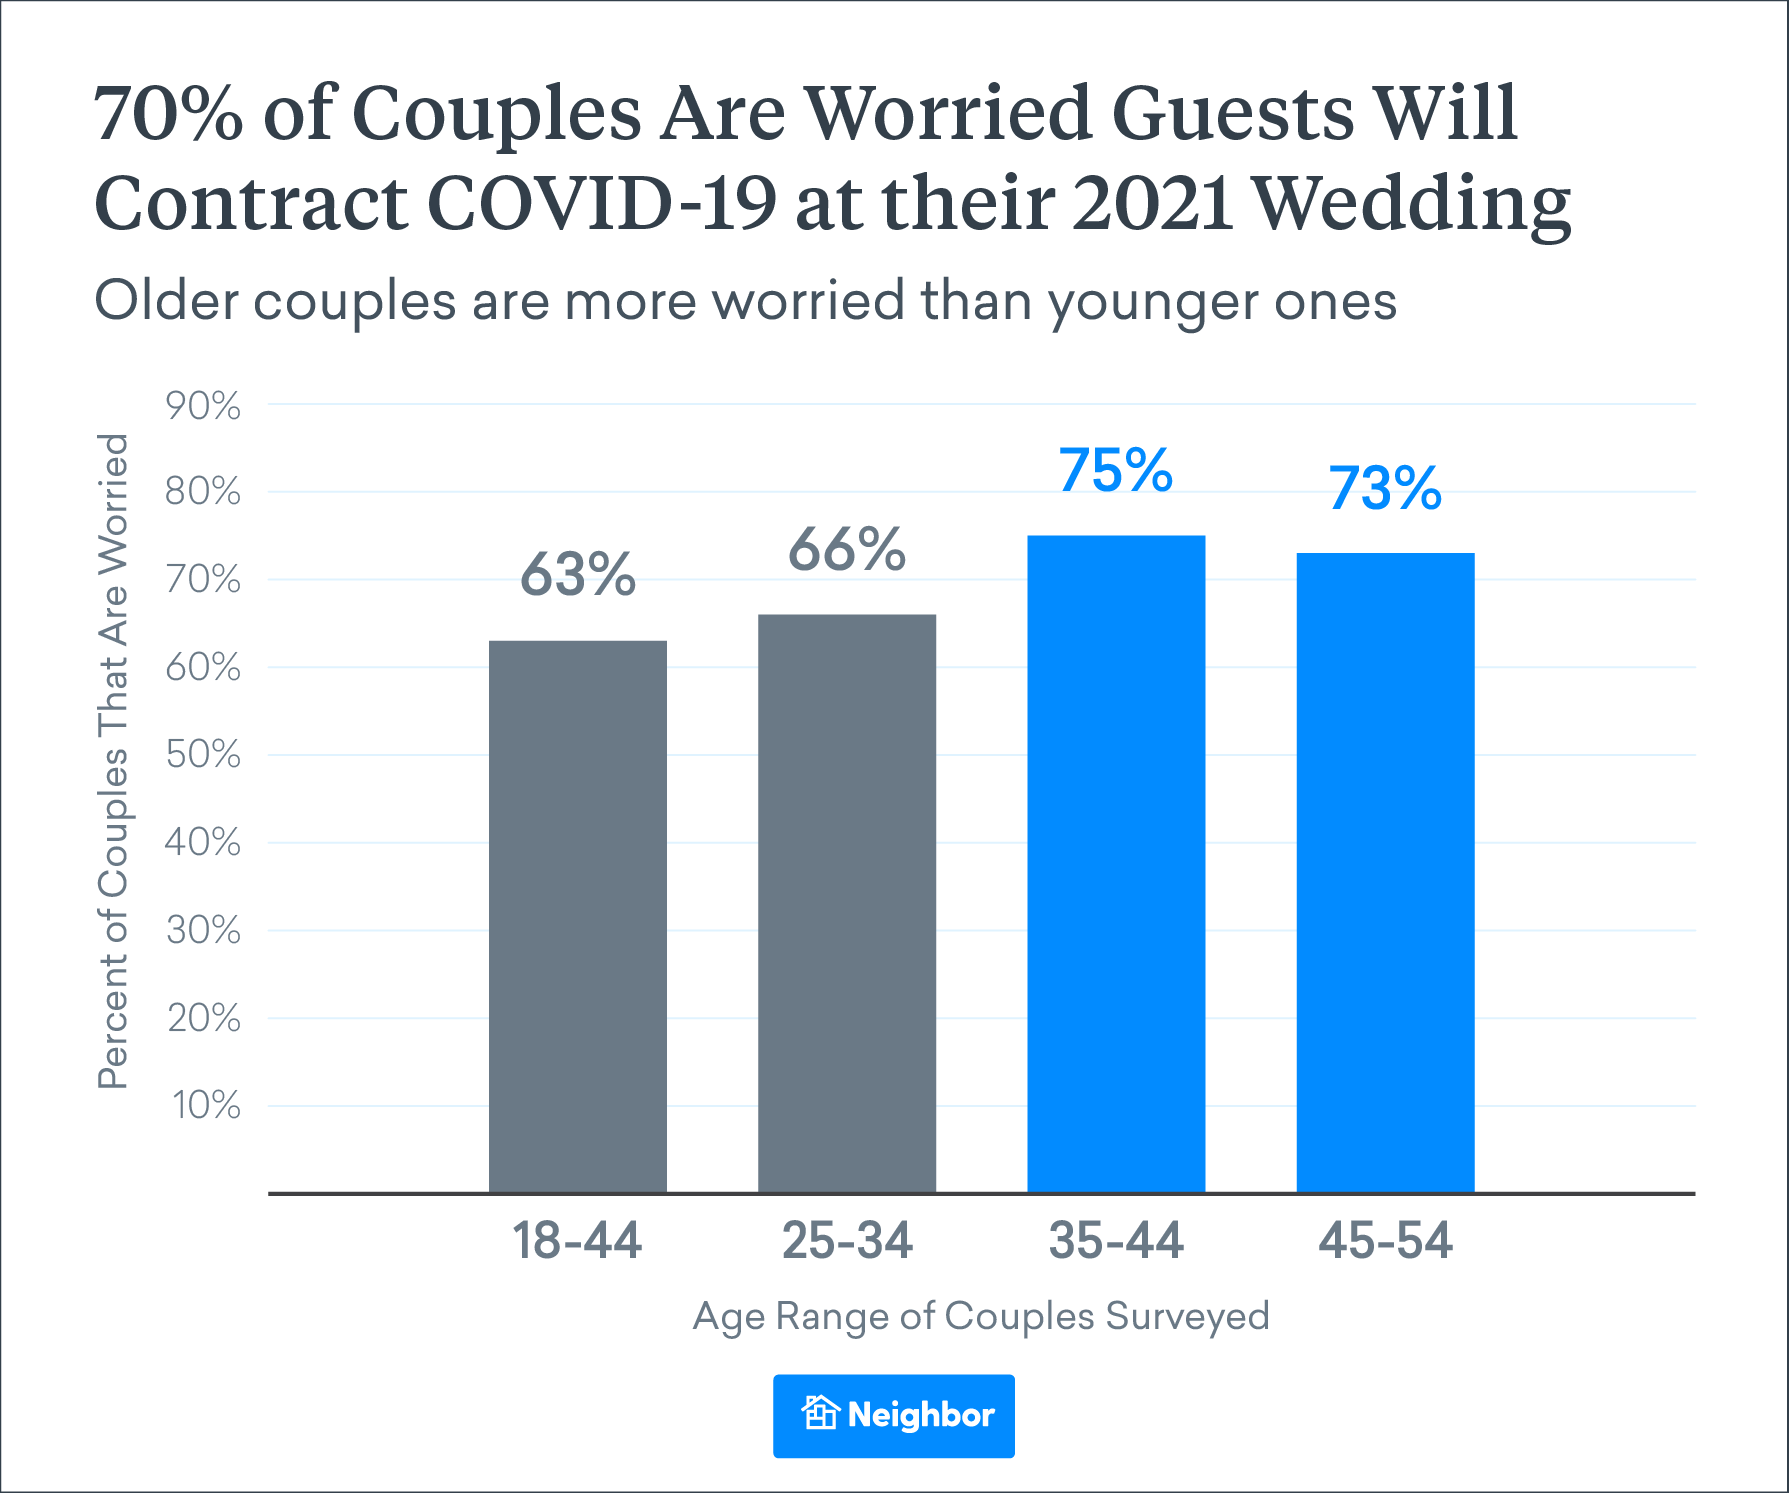 Overall, Couples Are Struggling to Balance Pandemic Safety and Their Dream Weddings